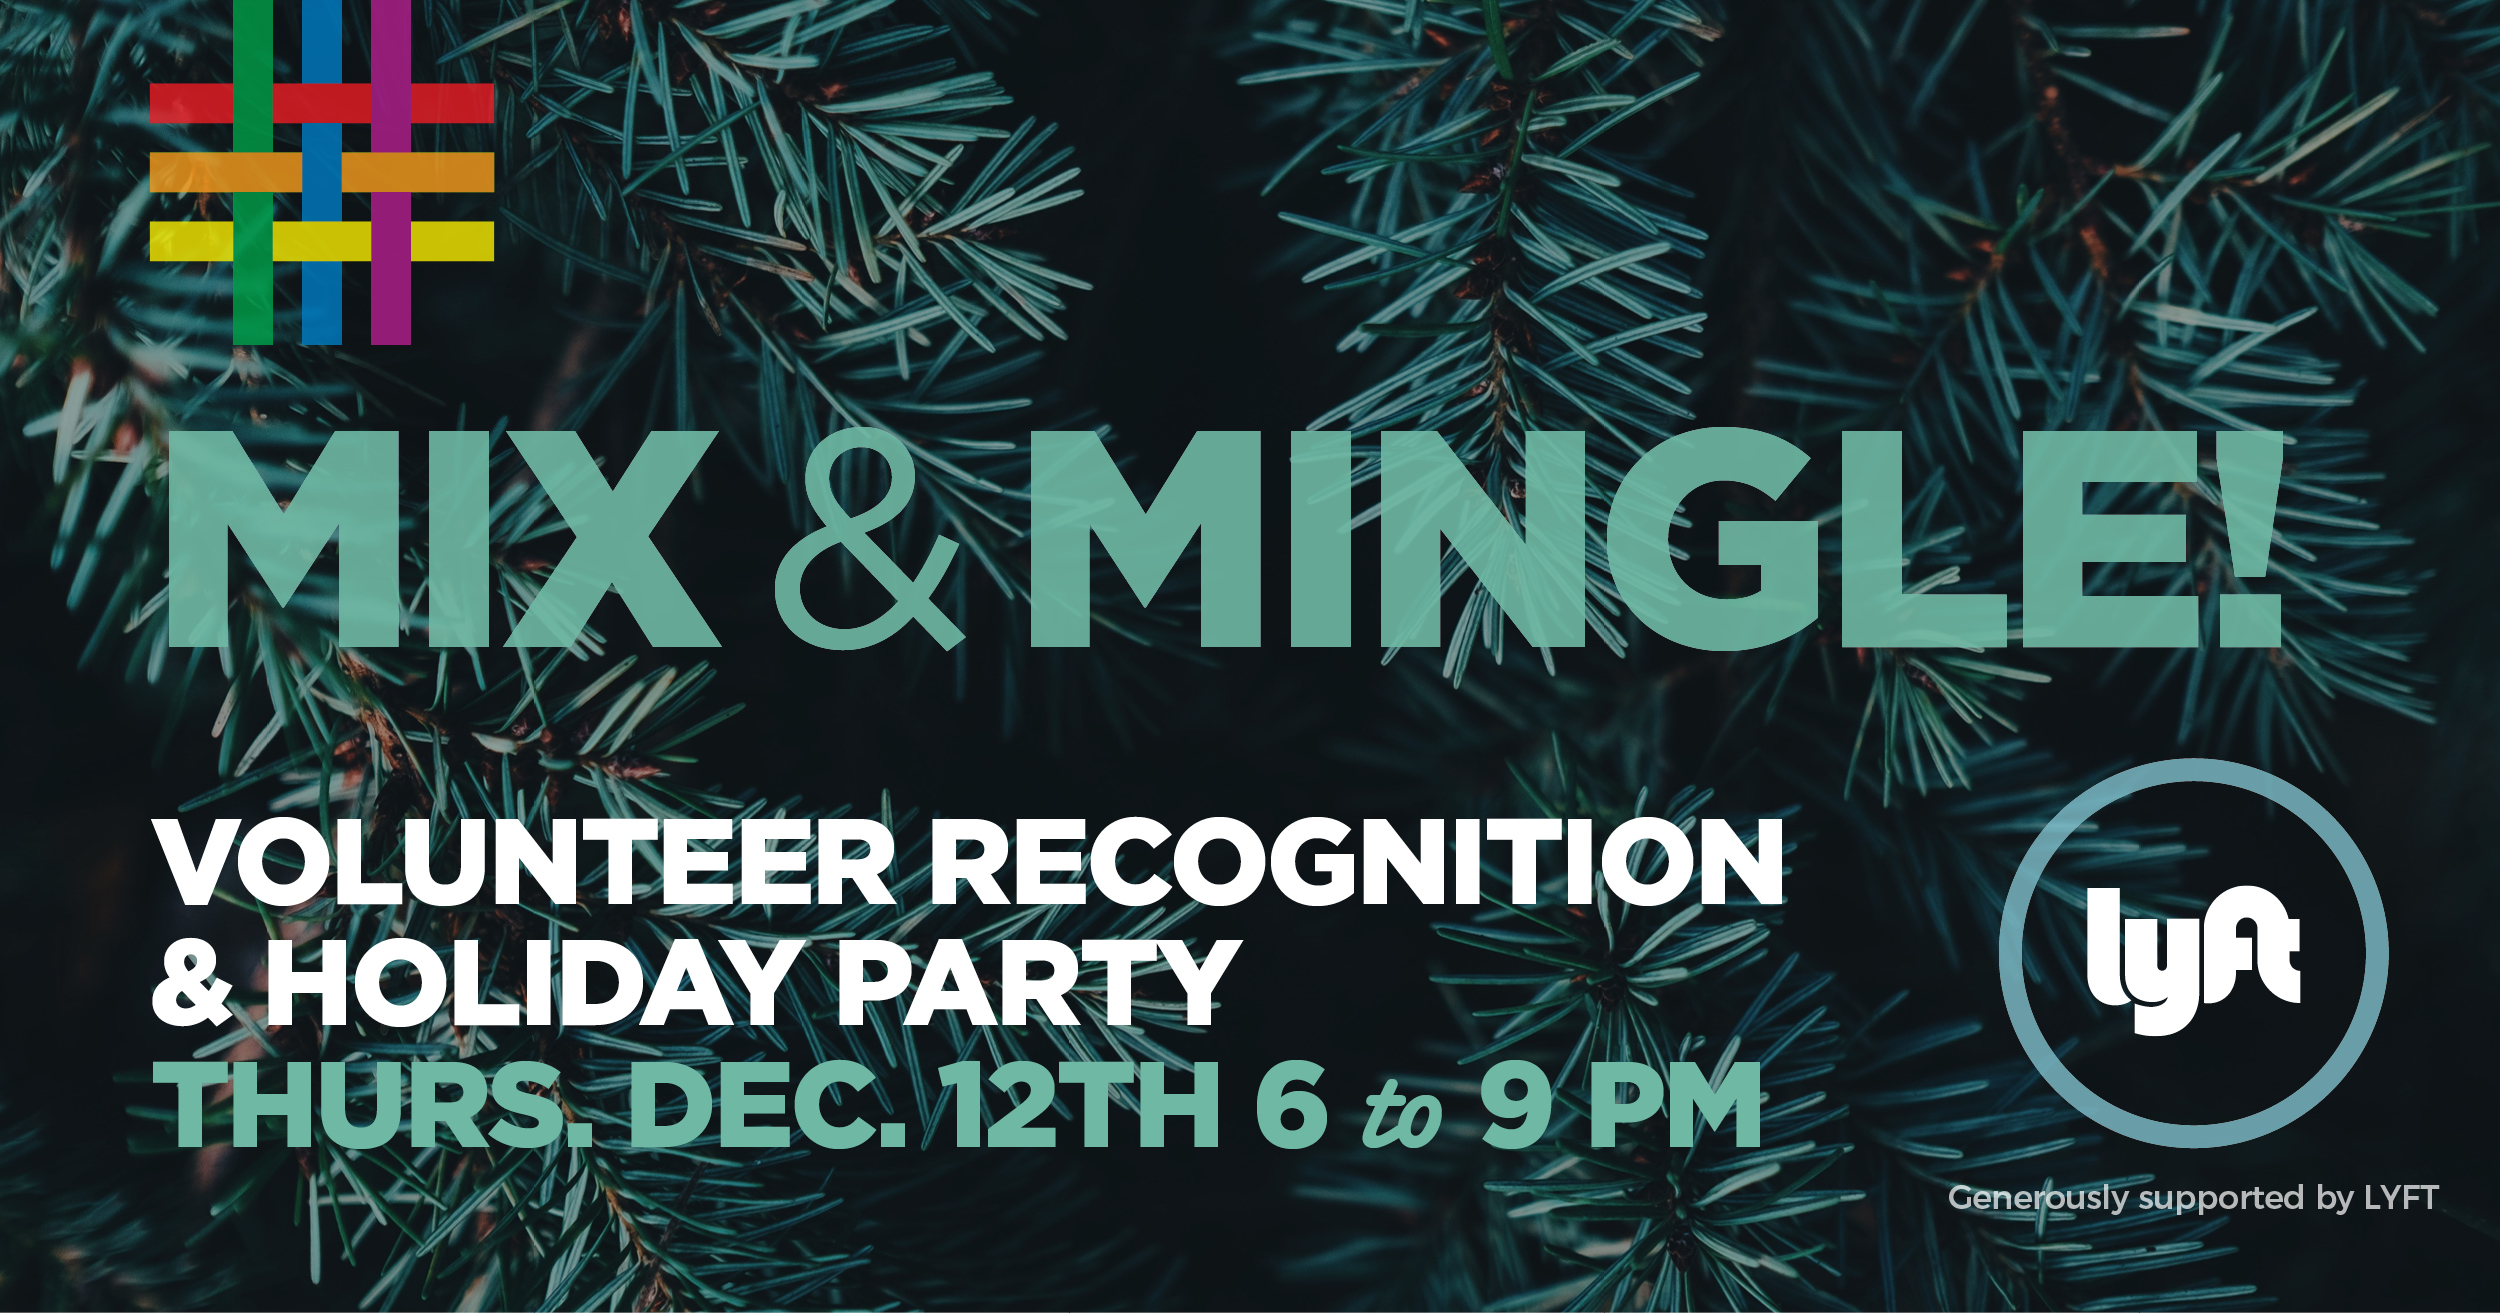 2019 Volunteer Recognition & Holiday Party at Brooklyn Community Pride Center